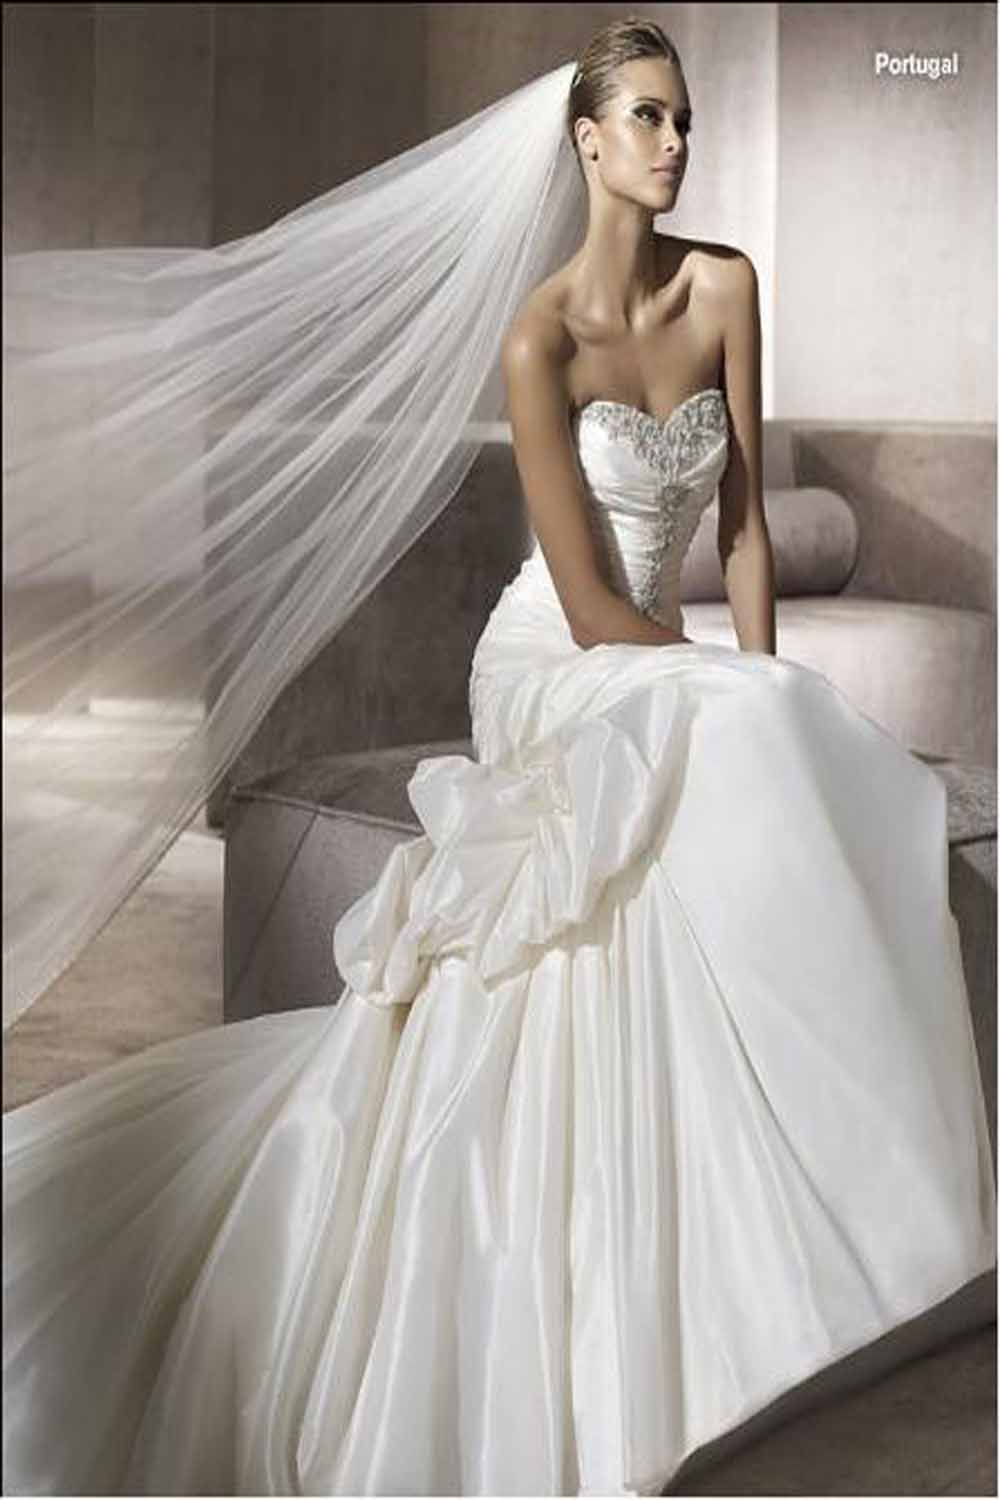 Very nice wedding dresses 2012 amazing wallpapers for Nice wedding dresses pictures